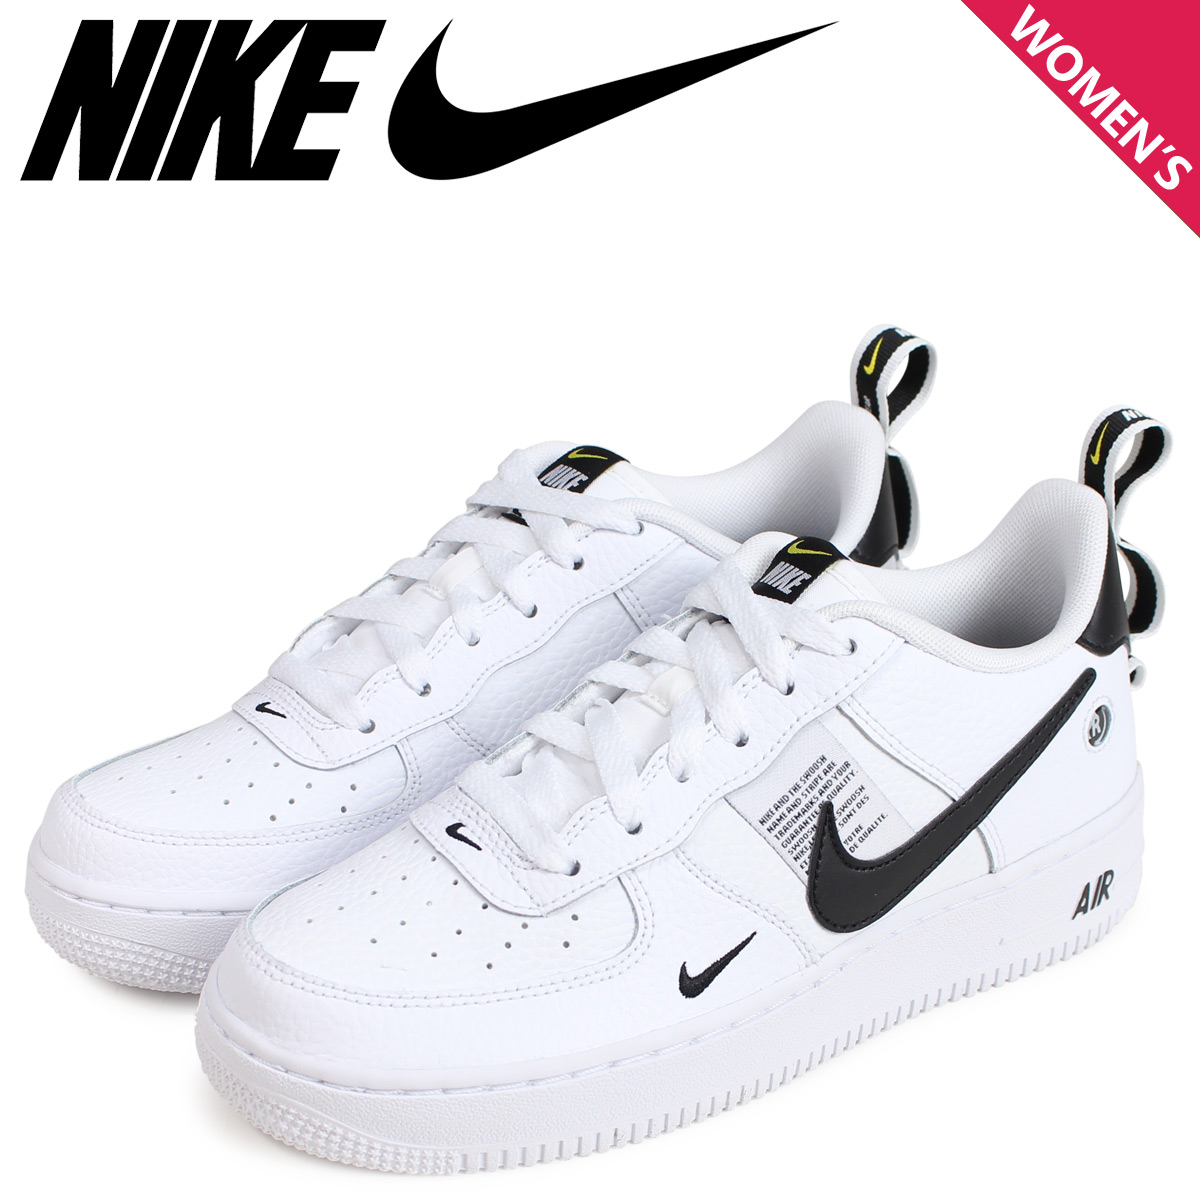 NIKE Nike air force 1 sneakers Lady's AIR FORCE 1 LV8 UTILITY GS white white AR1708 100